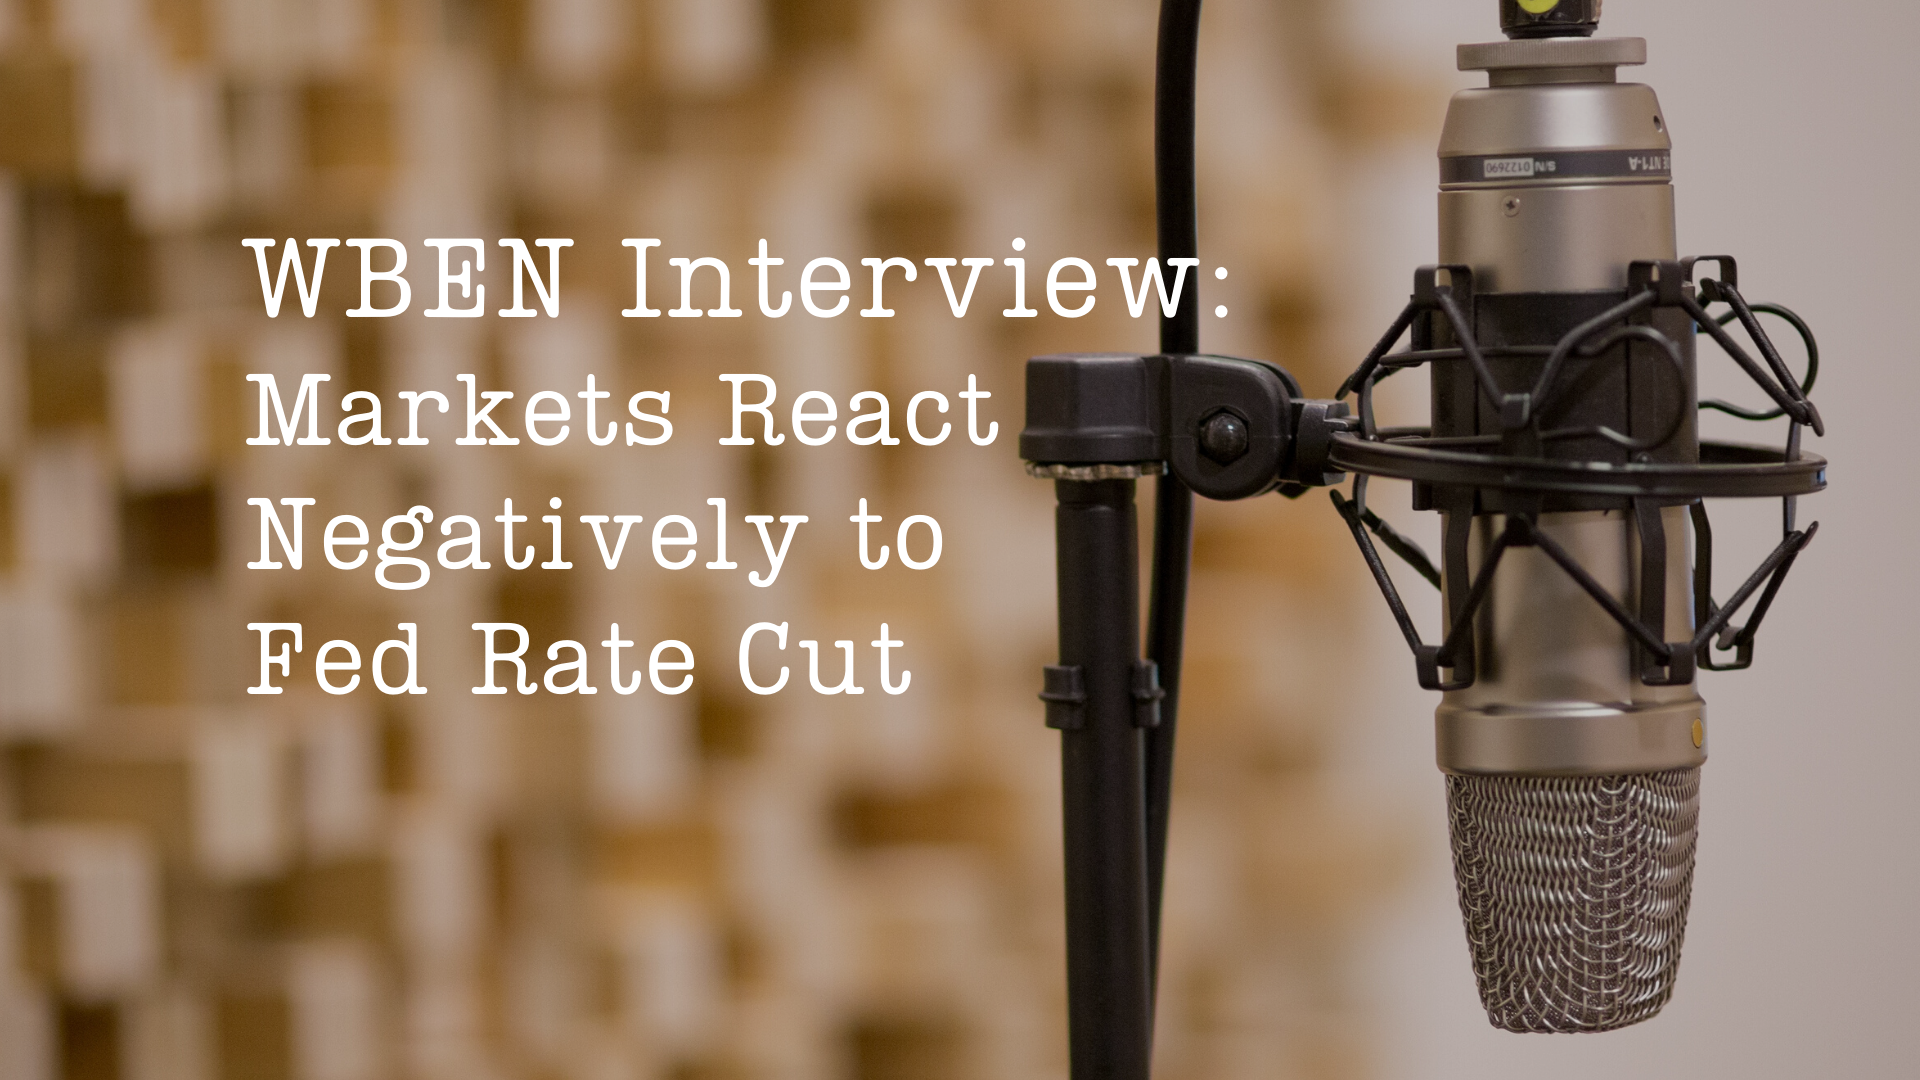 WBEN: Markets React Negatively to Fed Rate Drop